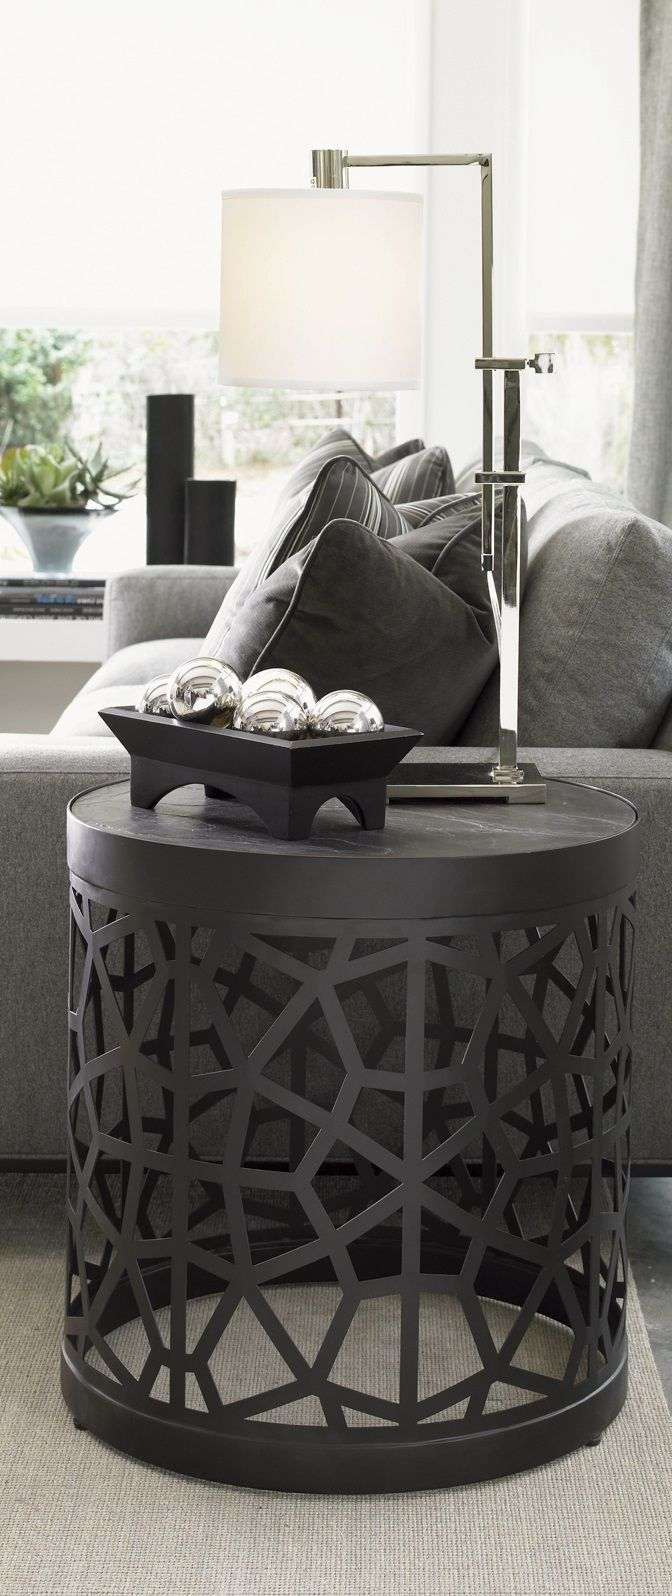 pin natalie monkelbaan modern interior design accent table ideas side tables end interiordesign casegoodsideas wipe clean tablecloth lamp homebase patio furniture outdoor sofa